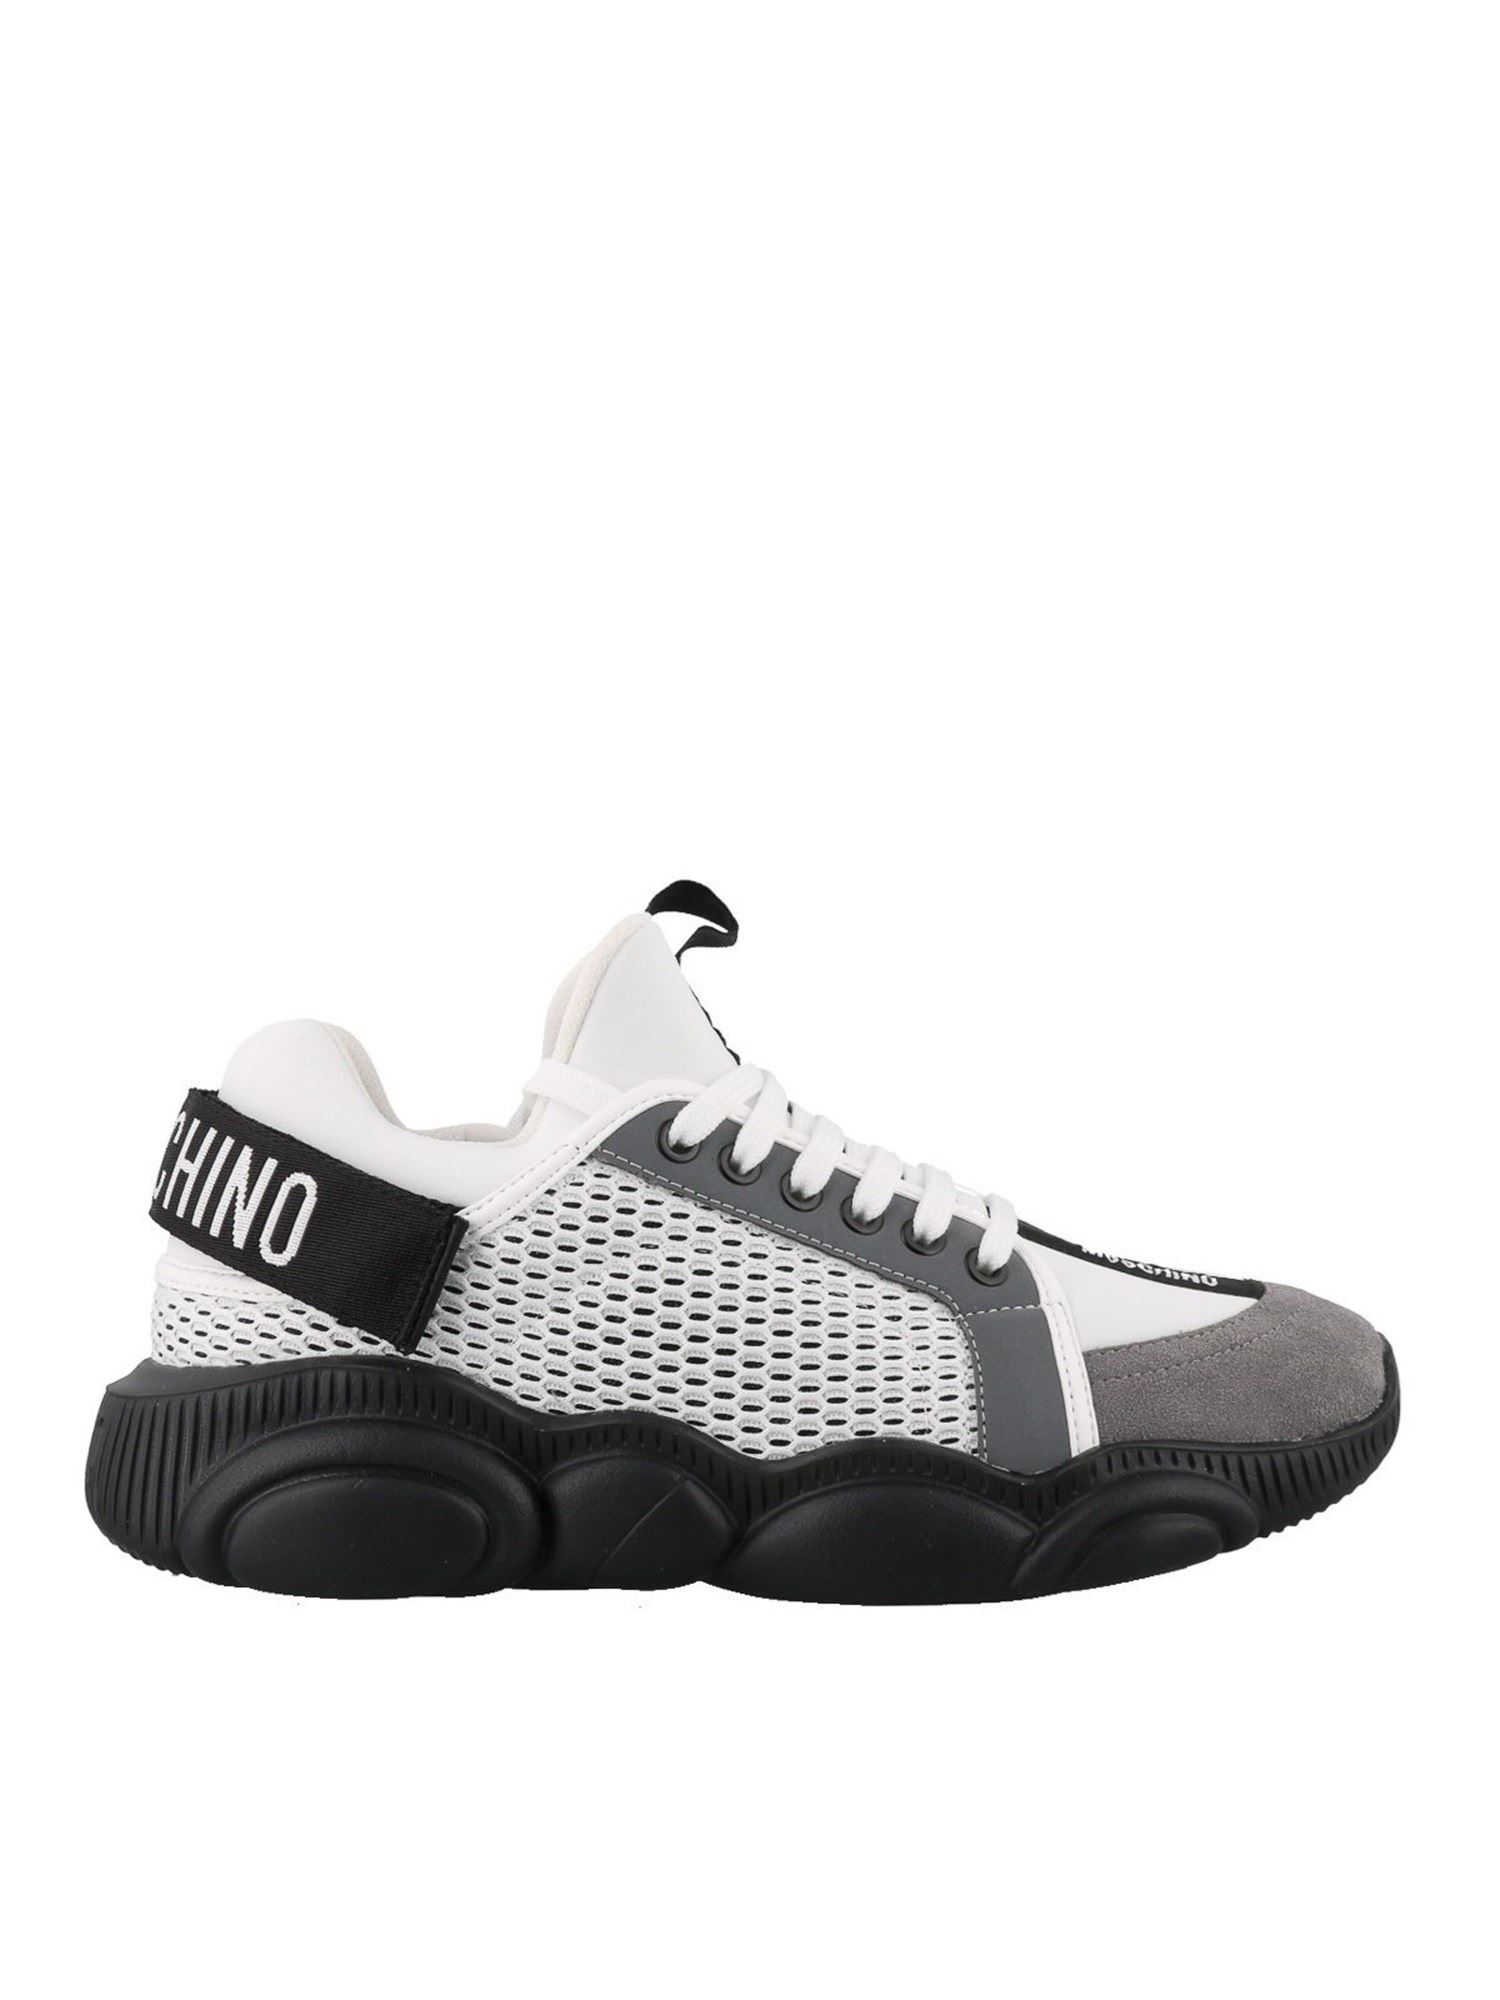 Moschino Sneakers TEDDY WHITE SNEAKERS WITH SUEDE INSERTS